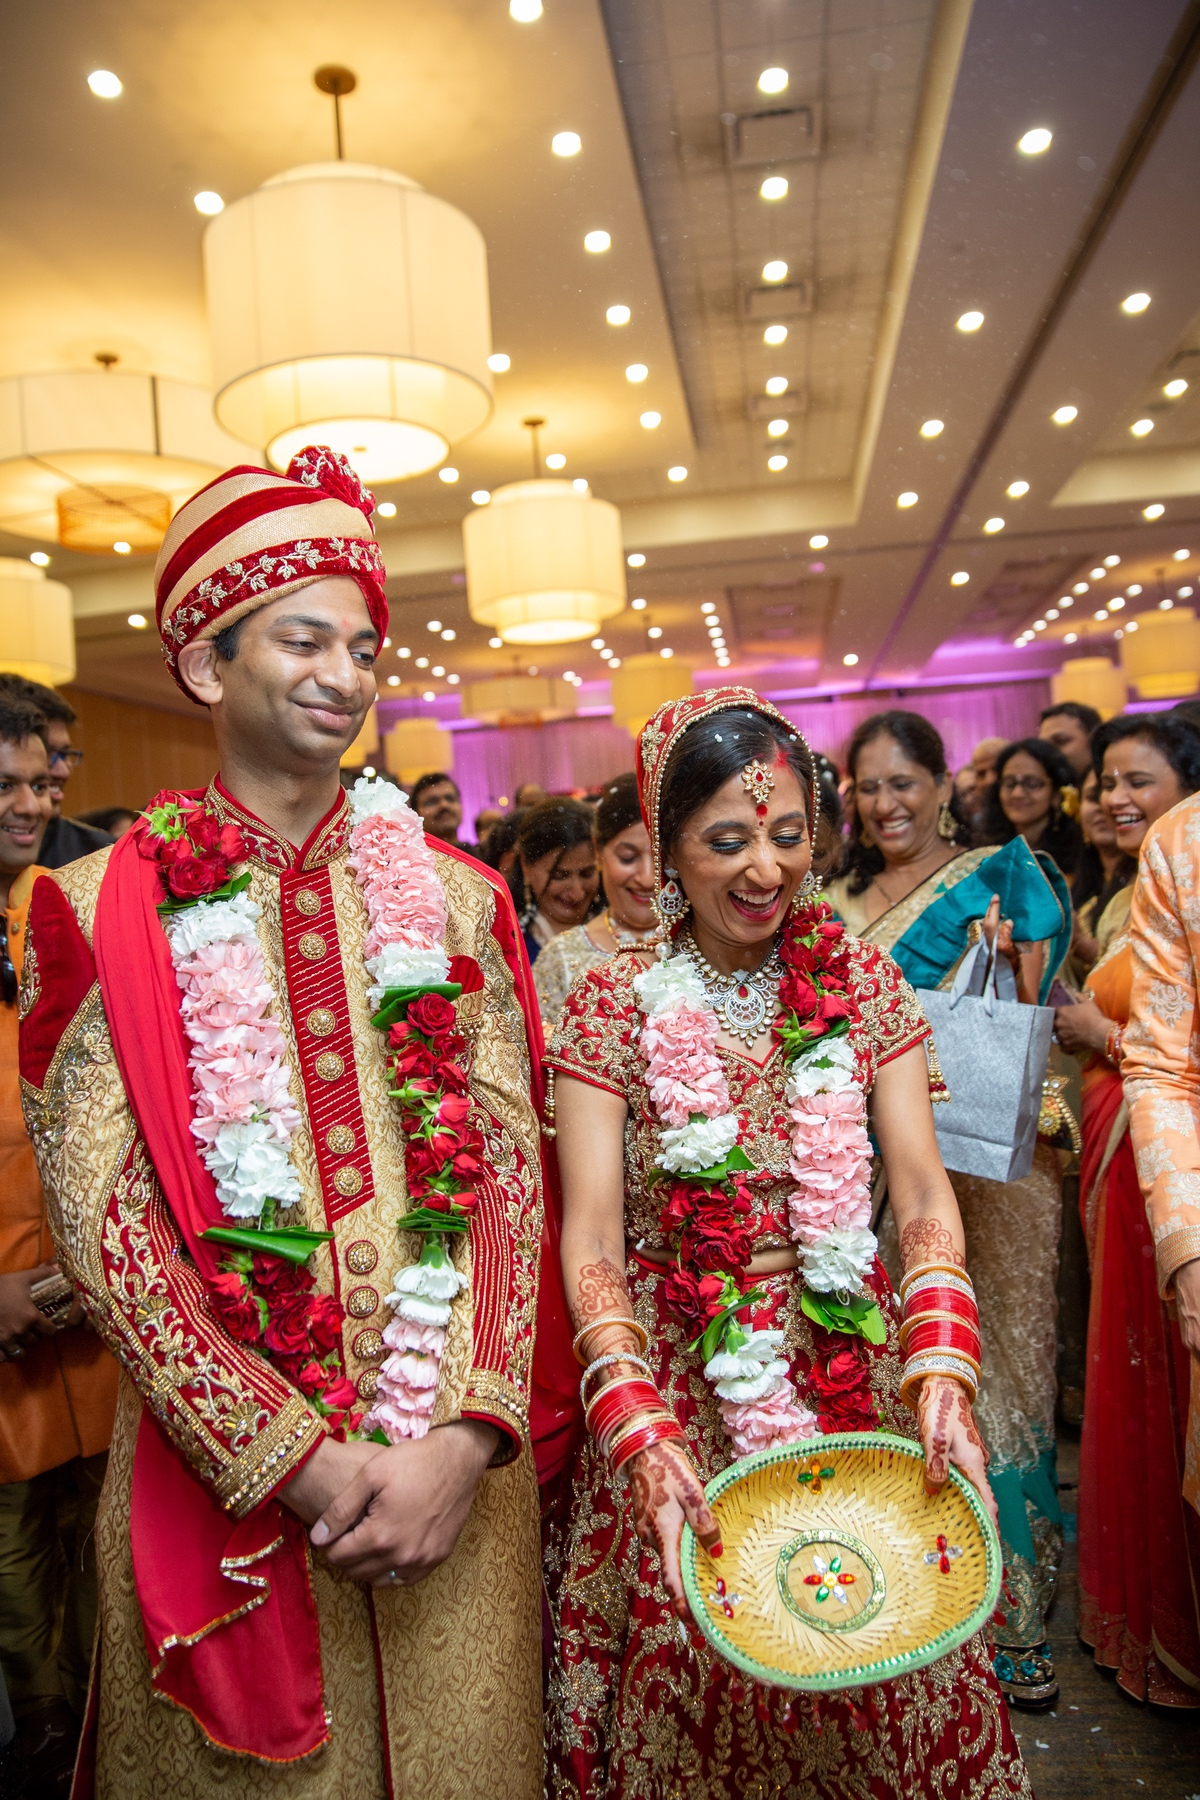 Le Cape Weddings - South Asian Wedding - Chicago Wedding Photographer P&V-68.jpg